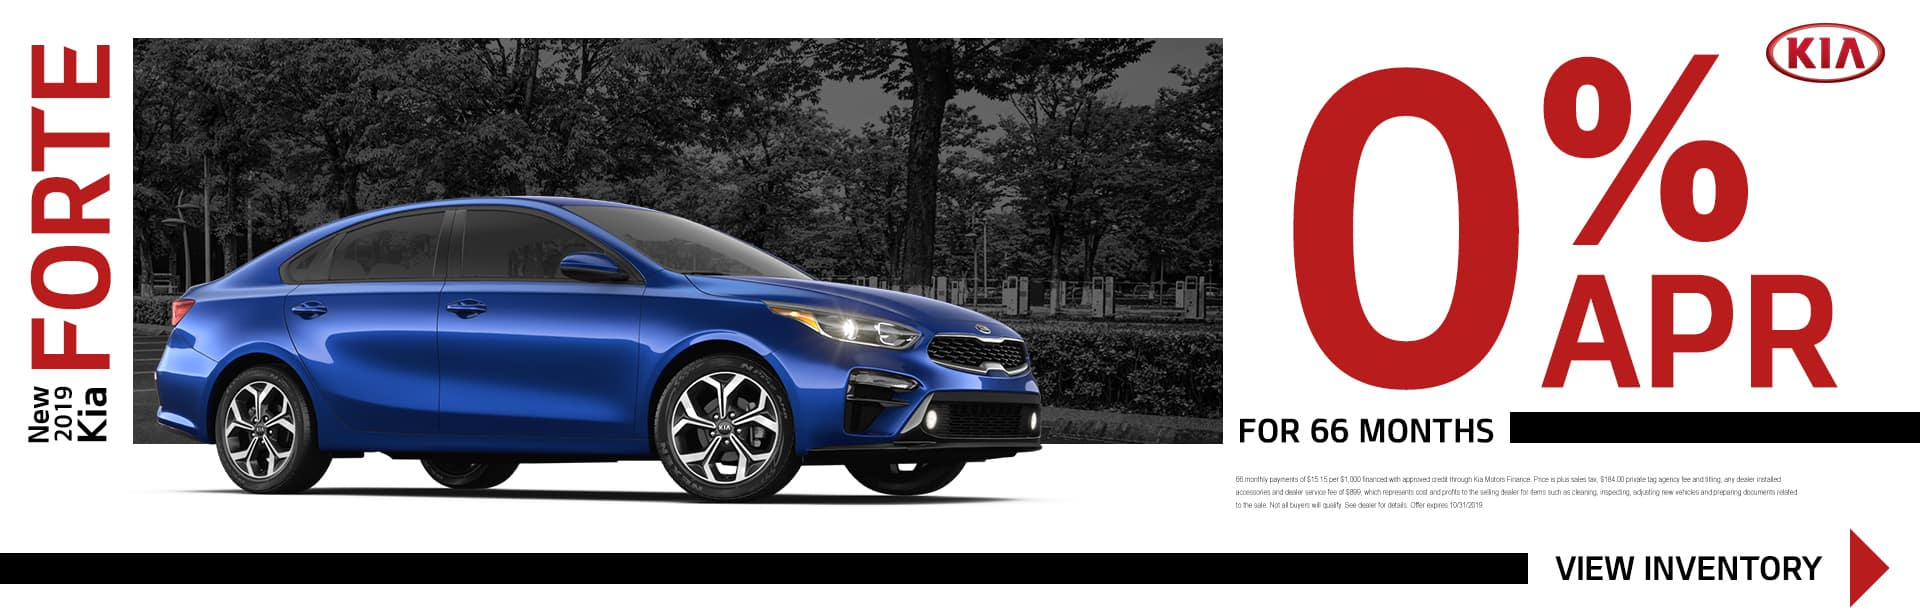 New 2019 Kia Forte | 0% APR For 66 Months